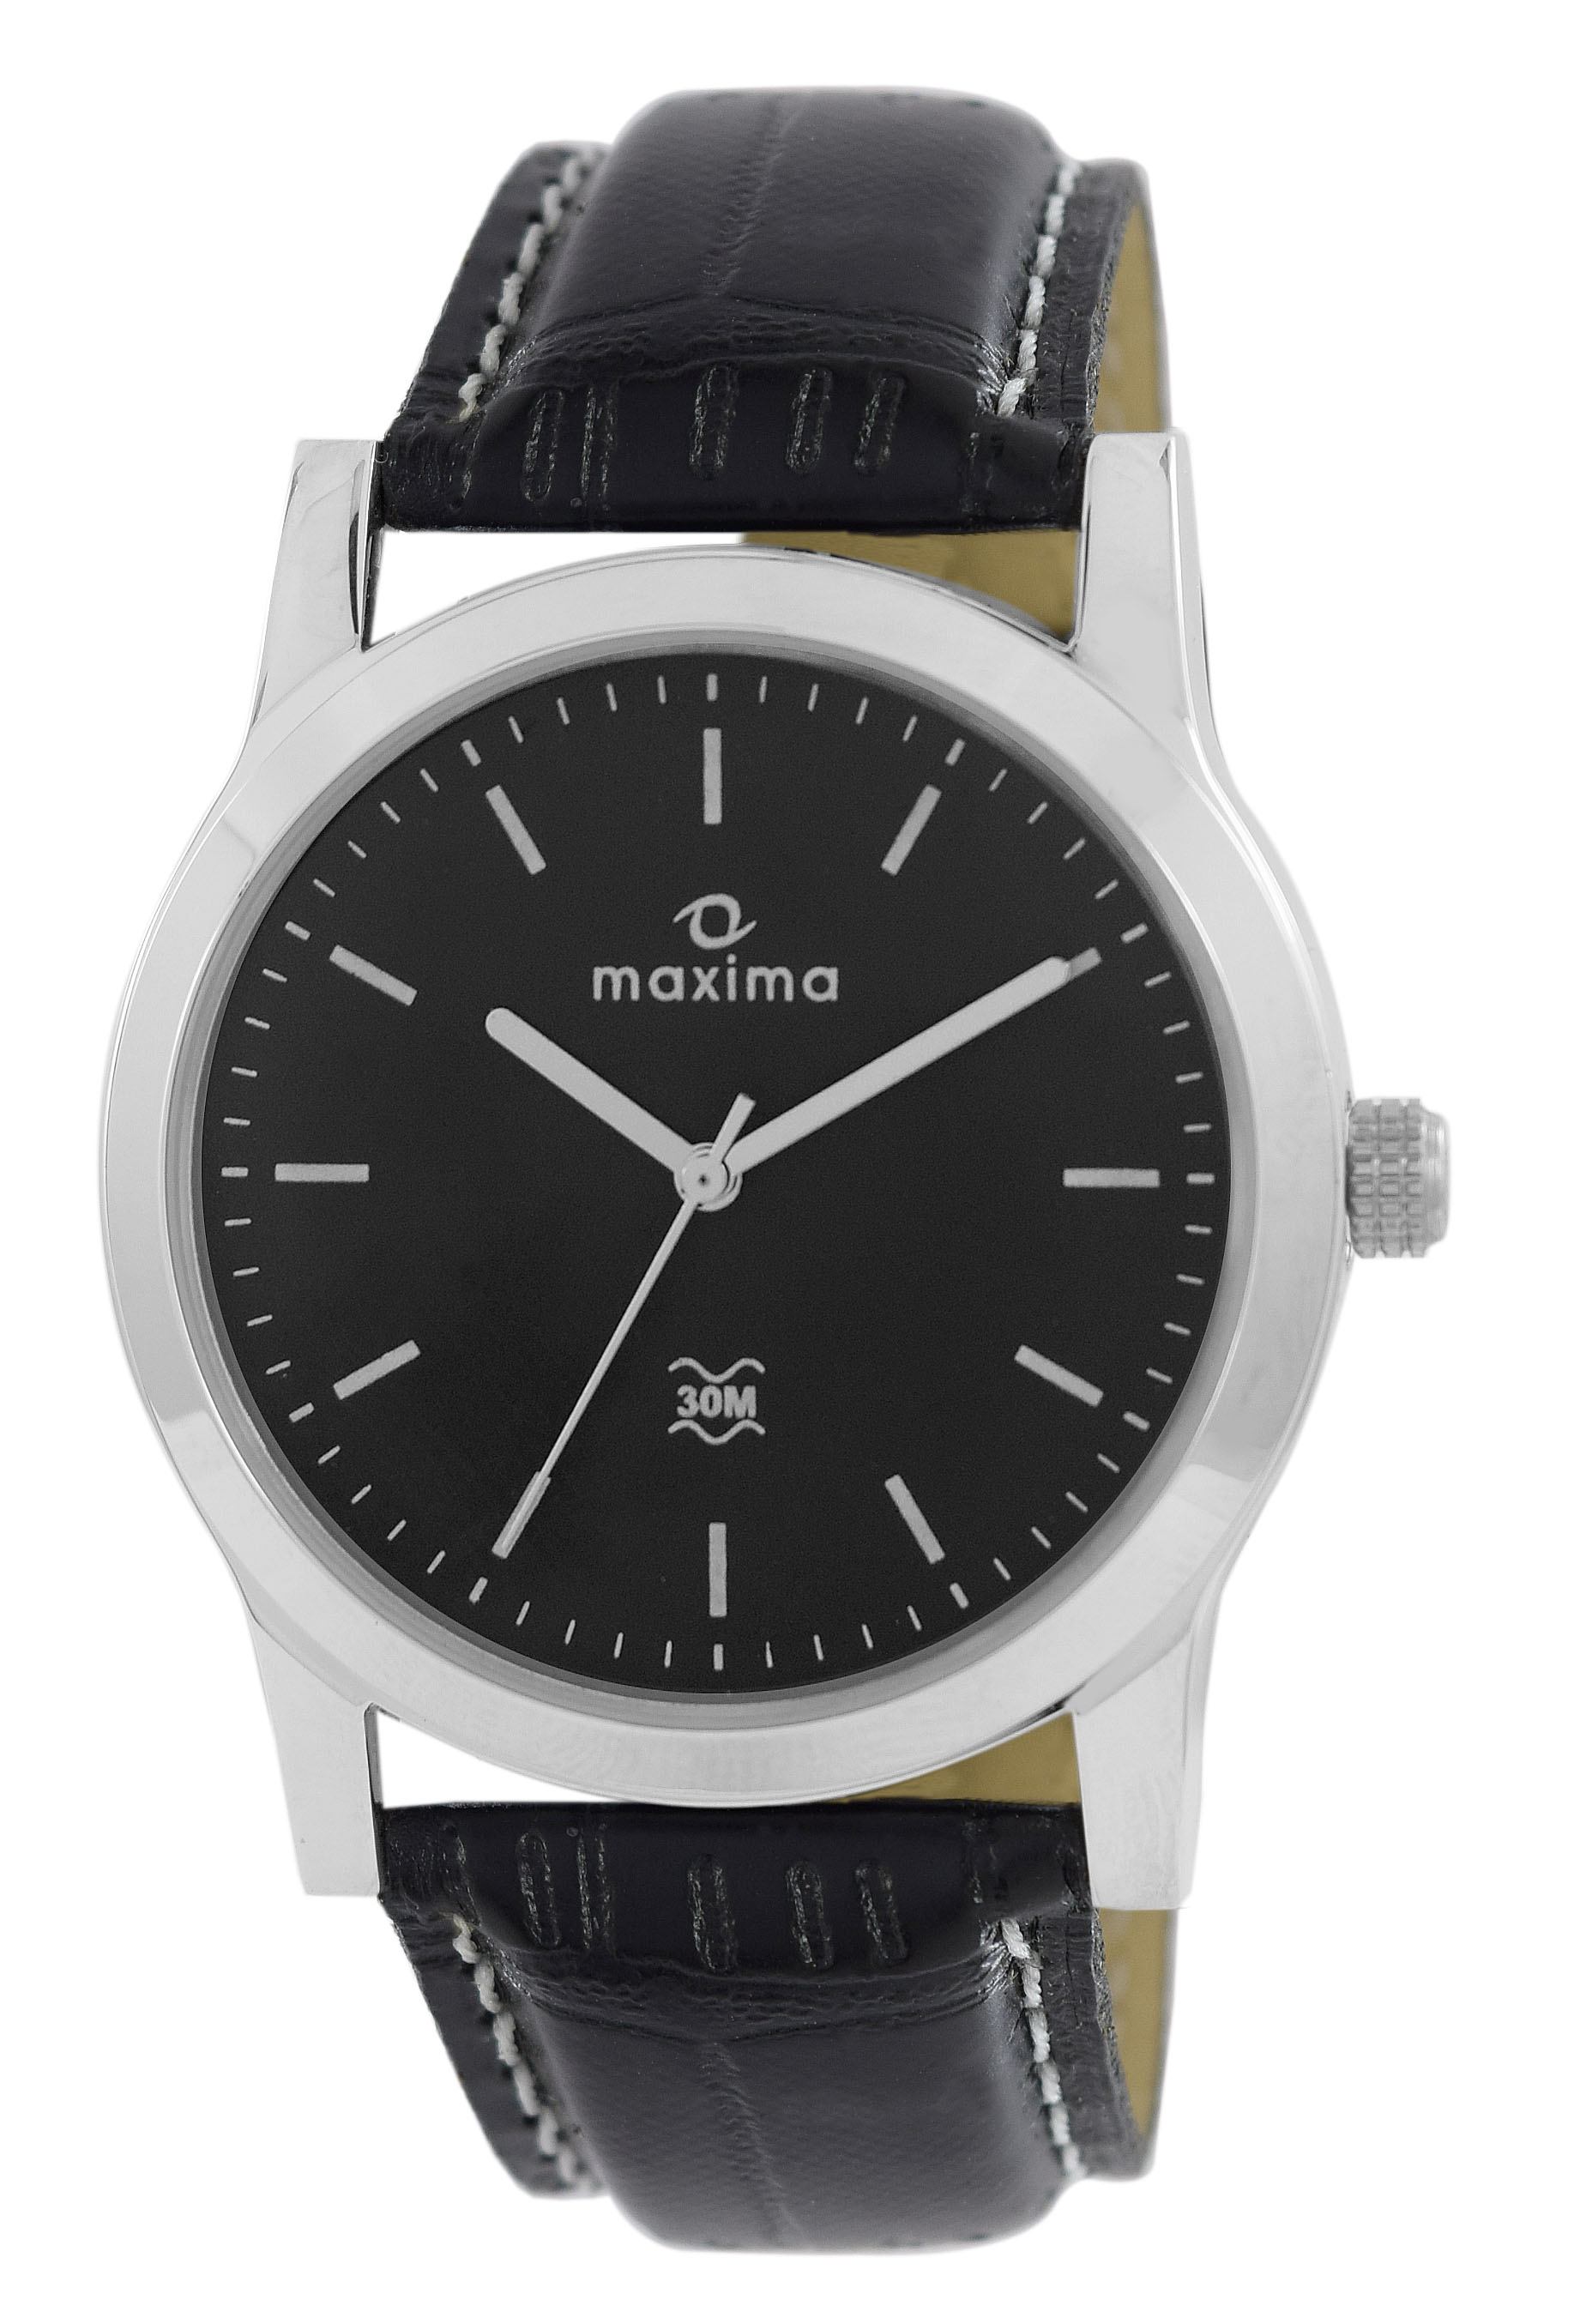 in brands at for brown online watches watch maxima best buy analog india men price original list